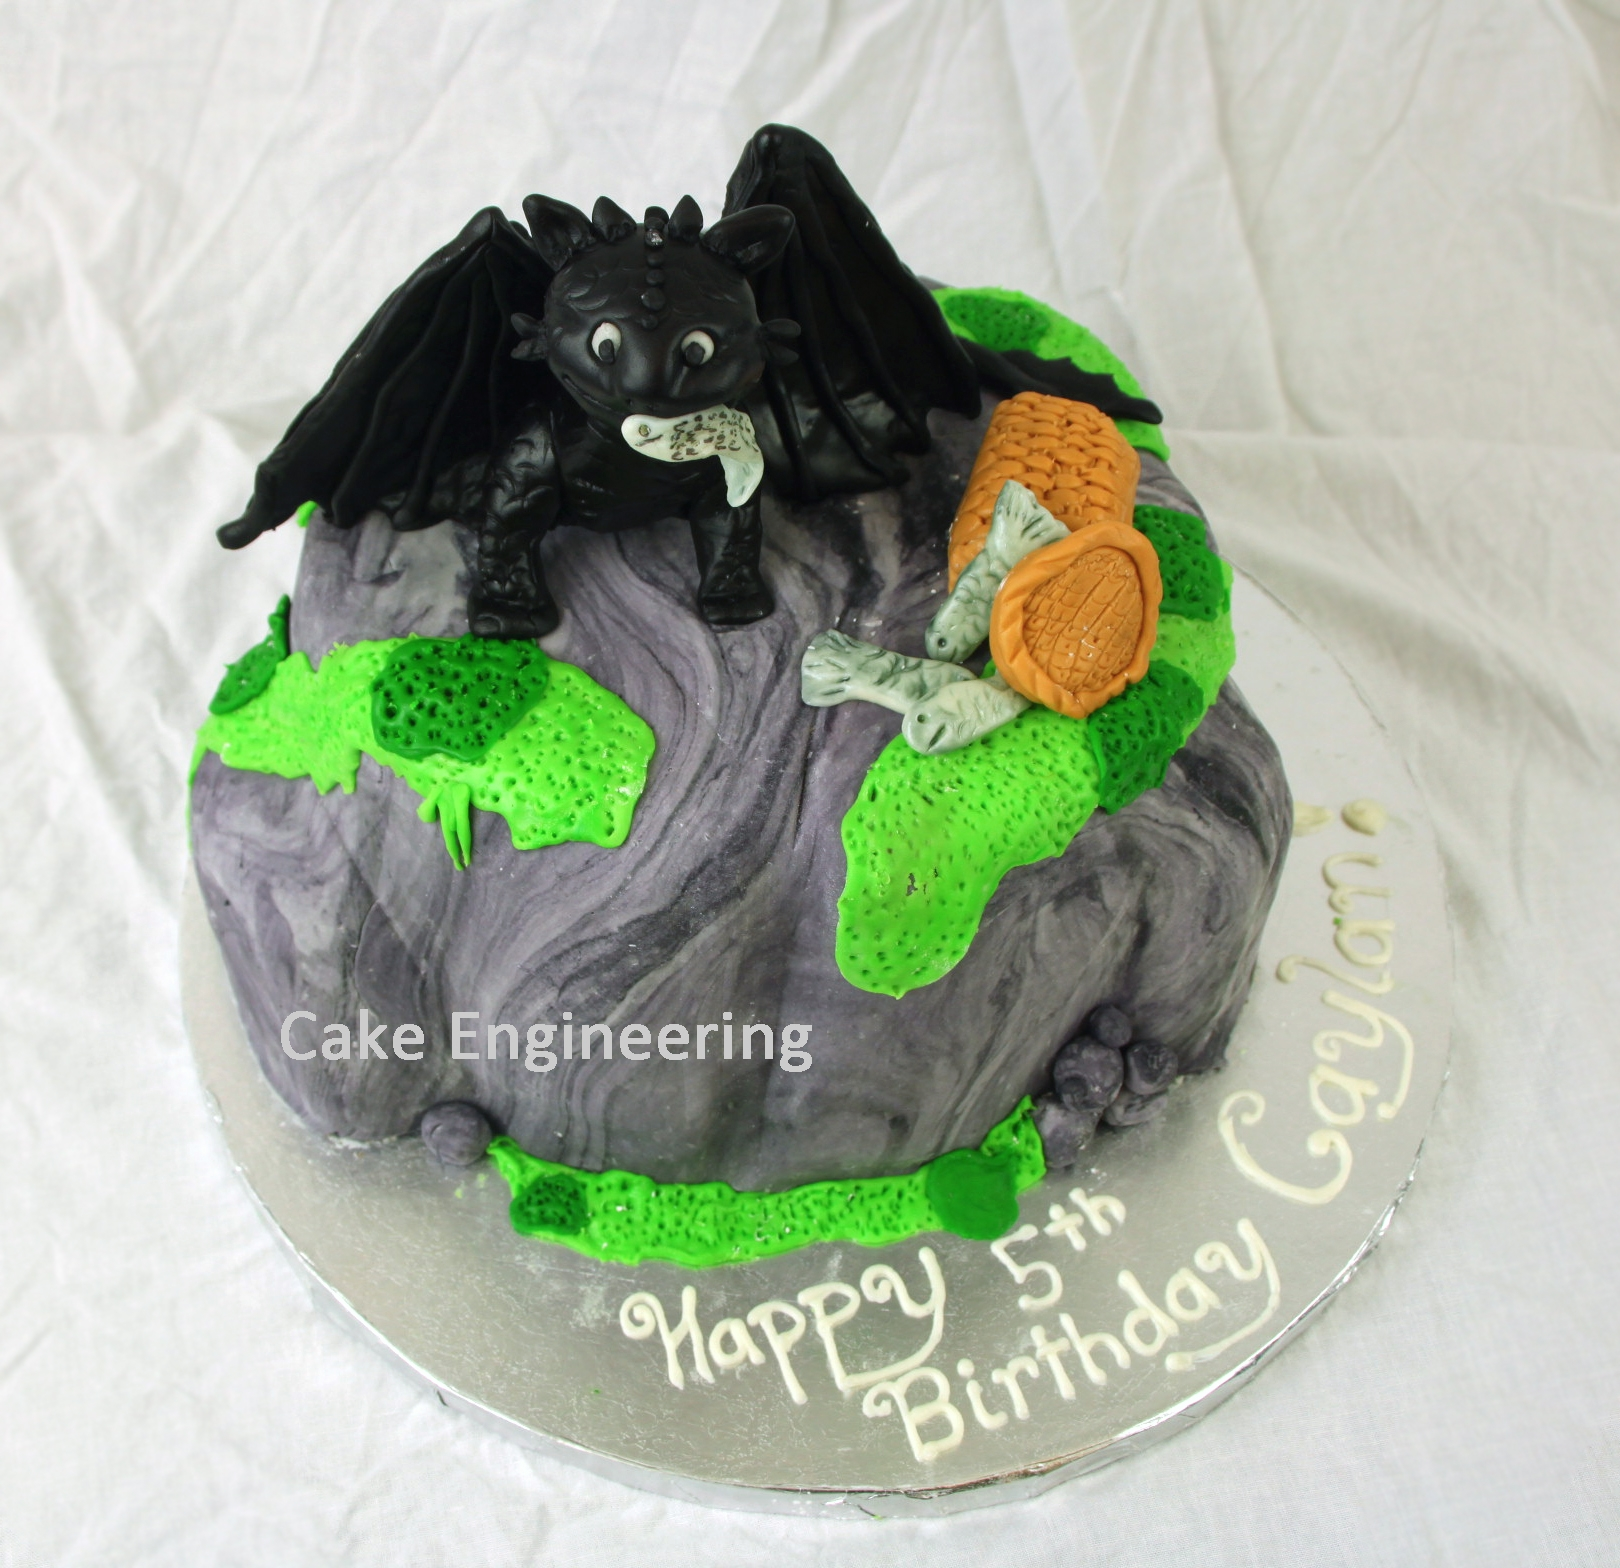 Toothless Cake Toothless from How to Train Your Dragon. Toothless is made from fondant with a wire frame for support.